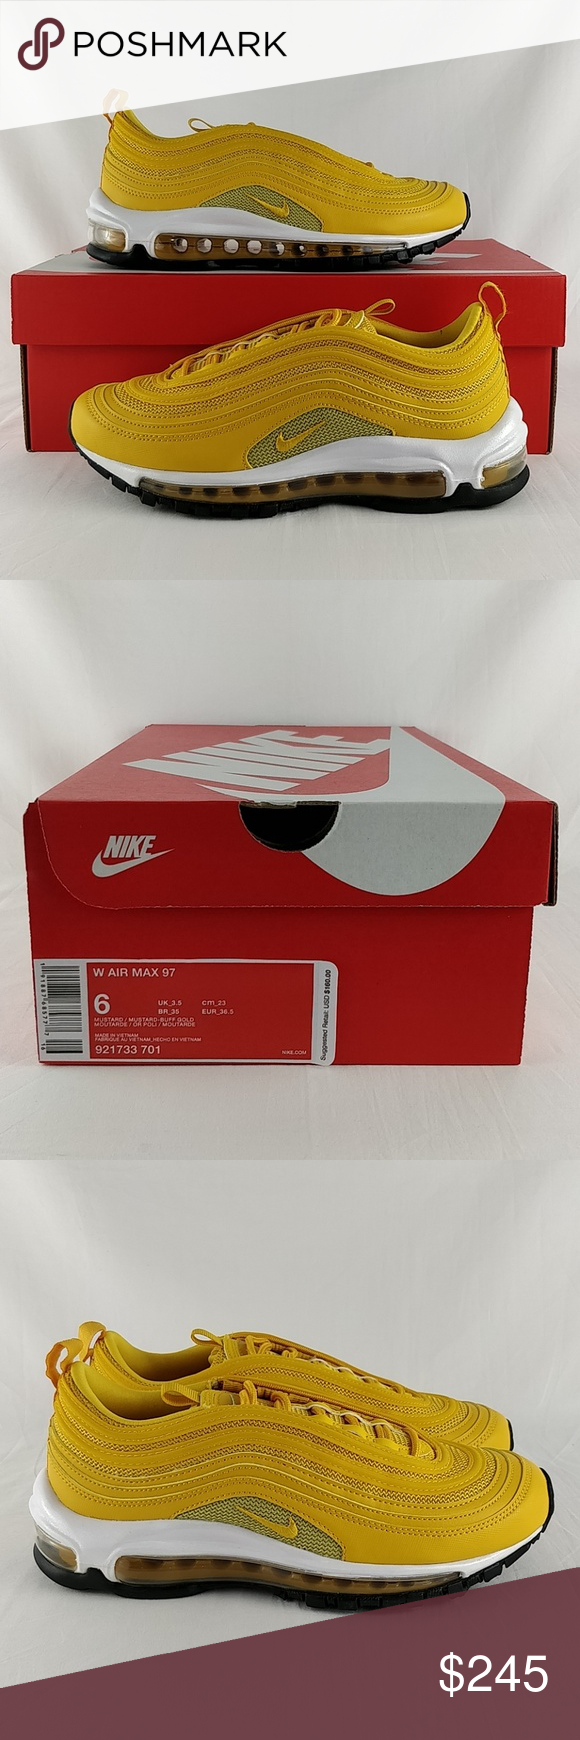 purchase cheap be0de 6cec0 Nike W Air Max 97 Mustard Buff Gold 921733-701 Nike W Air Max 97  Mustard Buff  Gold  Women s sizes 6 and 7.5 Brand New in Box. Any questions or concerns,  ...